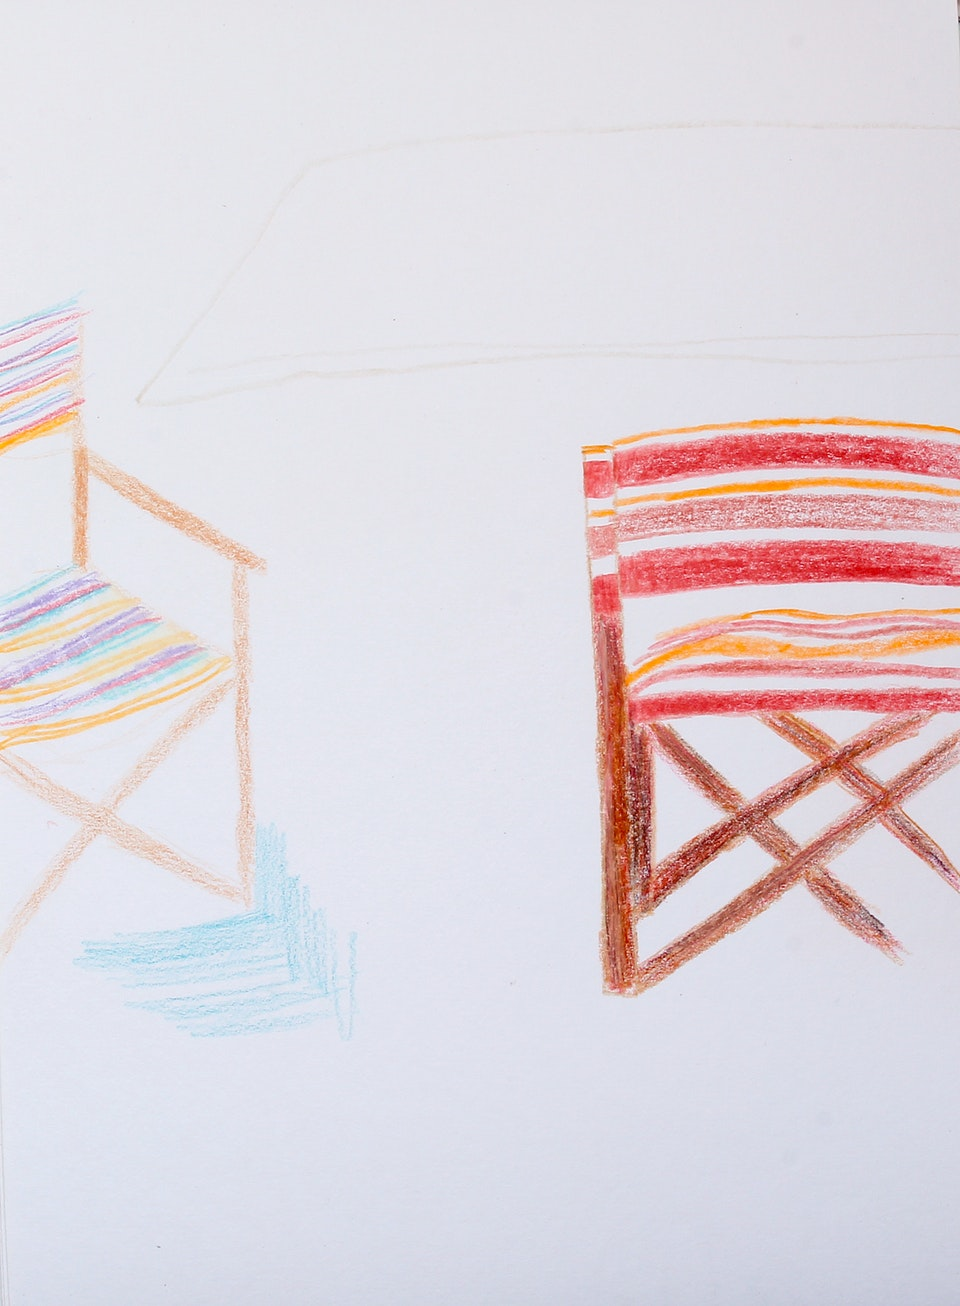 Domestic - Chairs - 2020 Colour Pencil on Paper - 21 x 29 cm A4